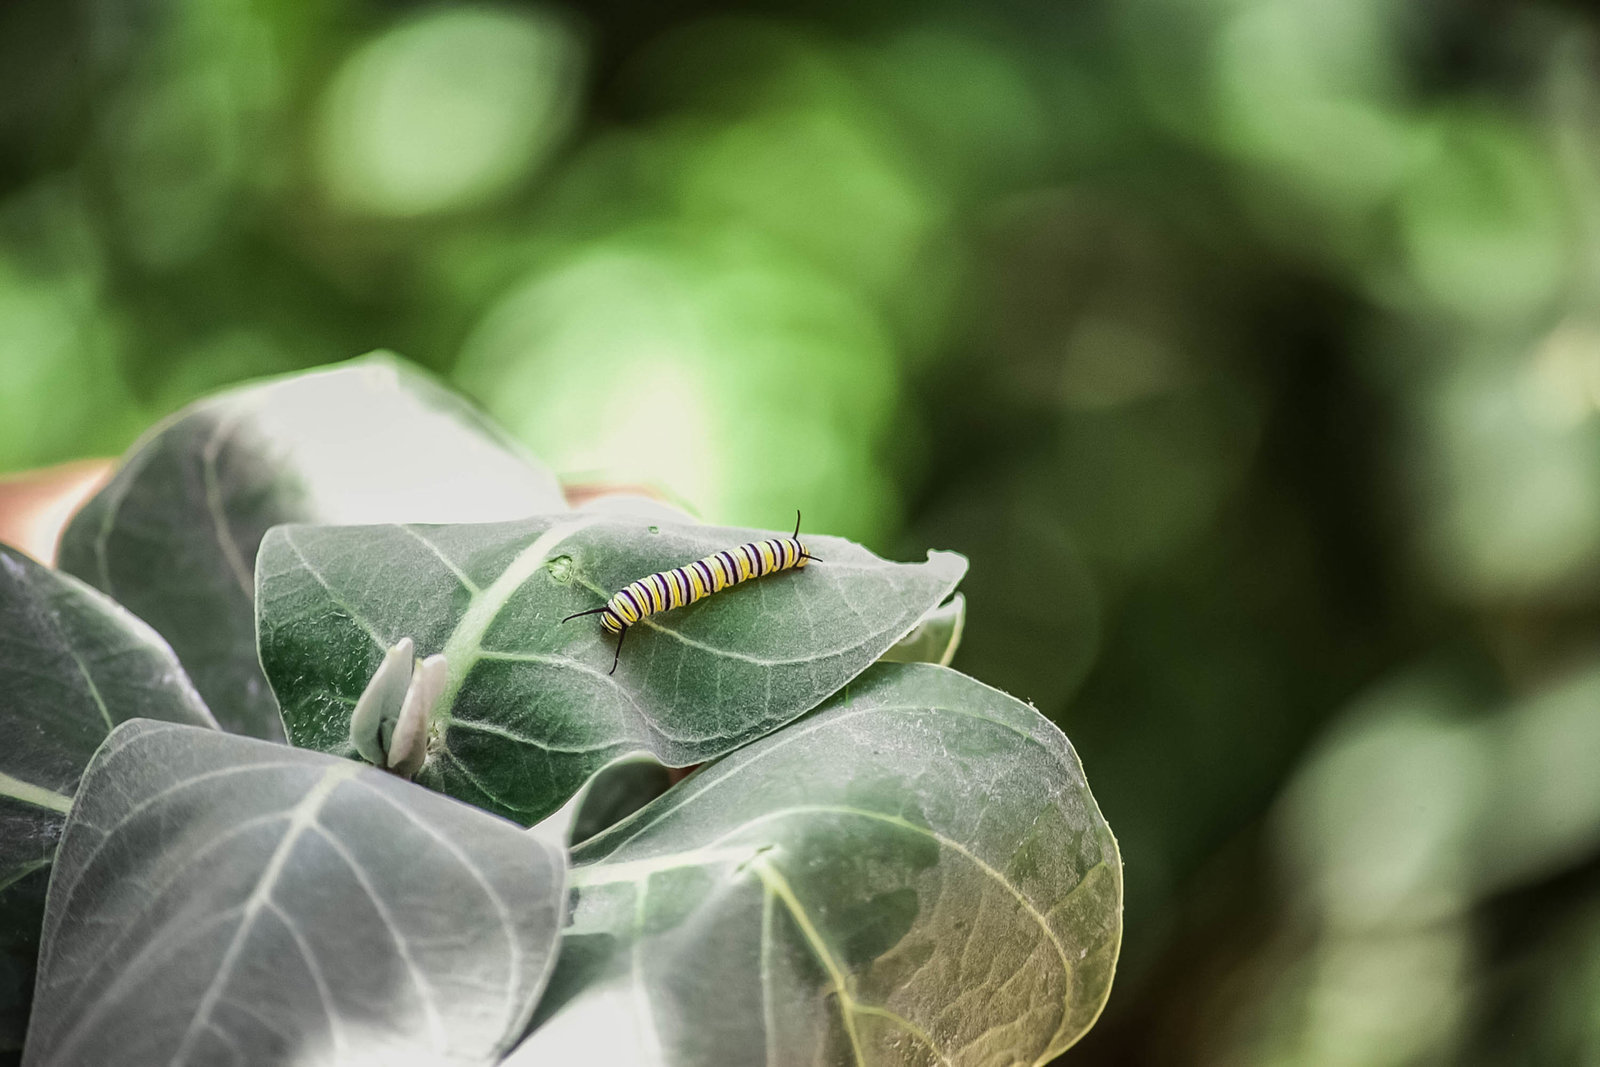 monarch-caterpillar-travel-aruba-kate-timbers-photography-845